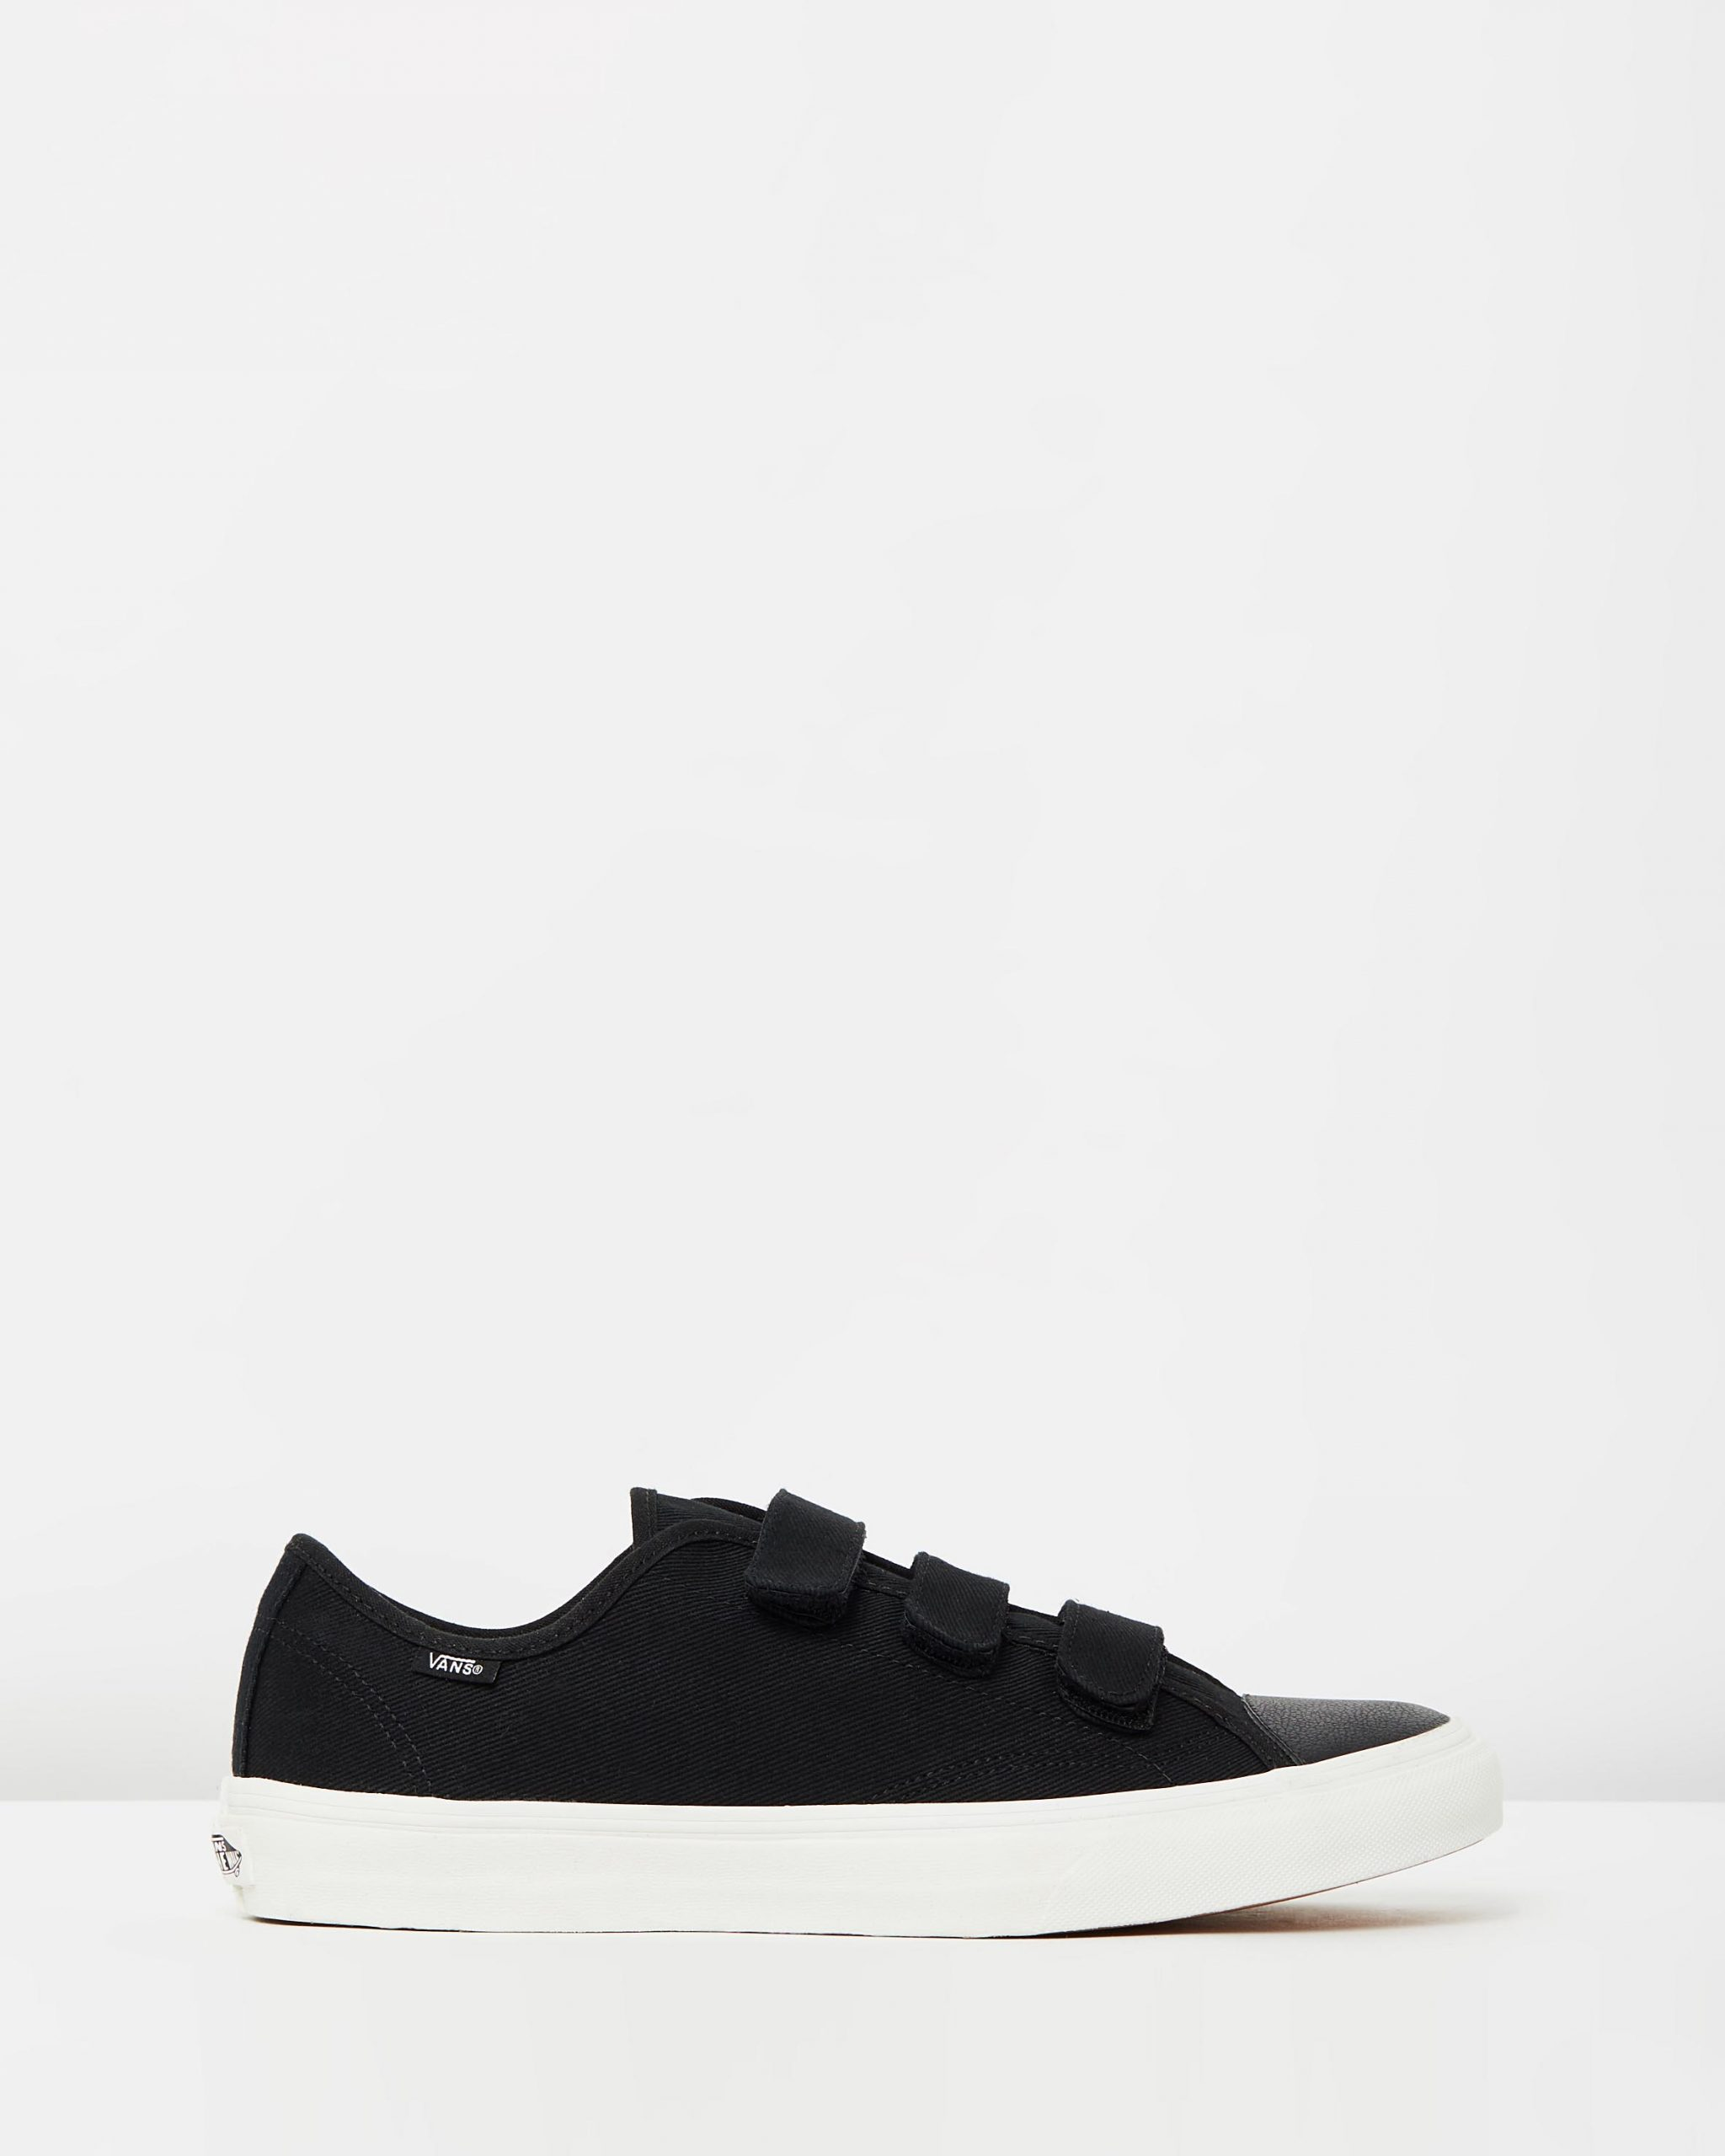 Vans Prison Issue Black & White